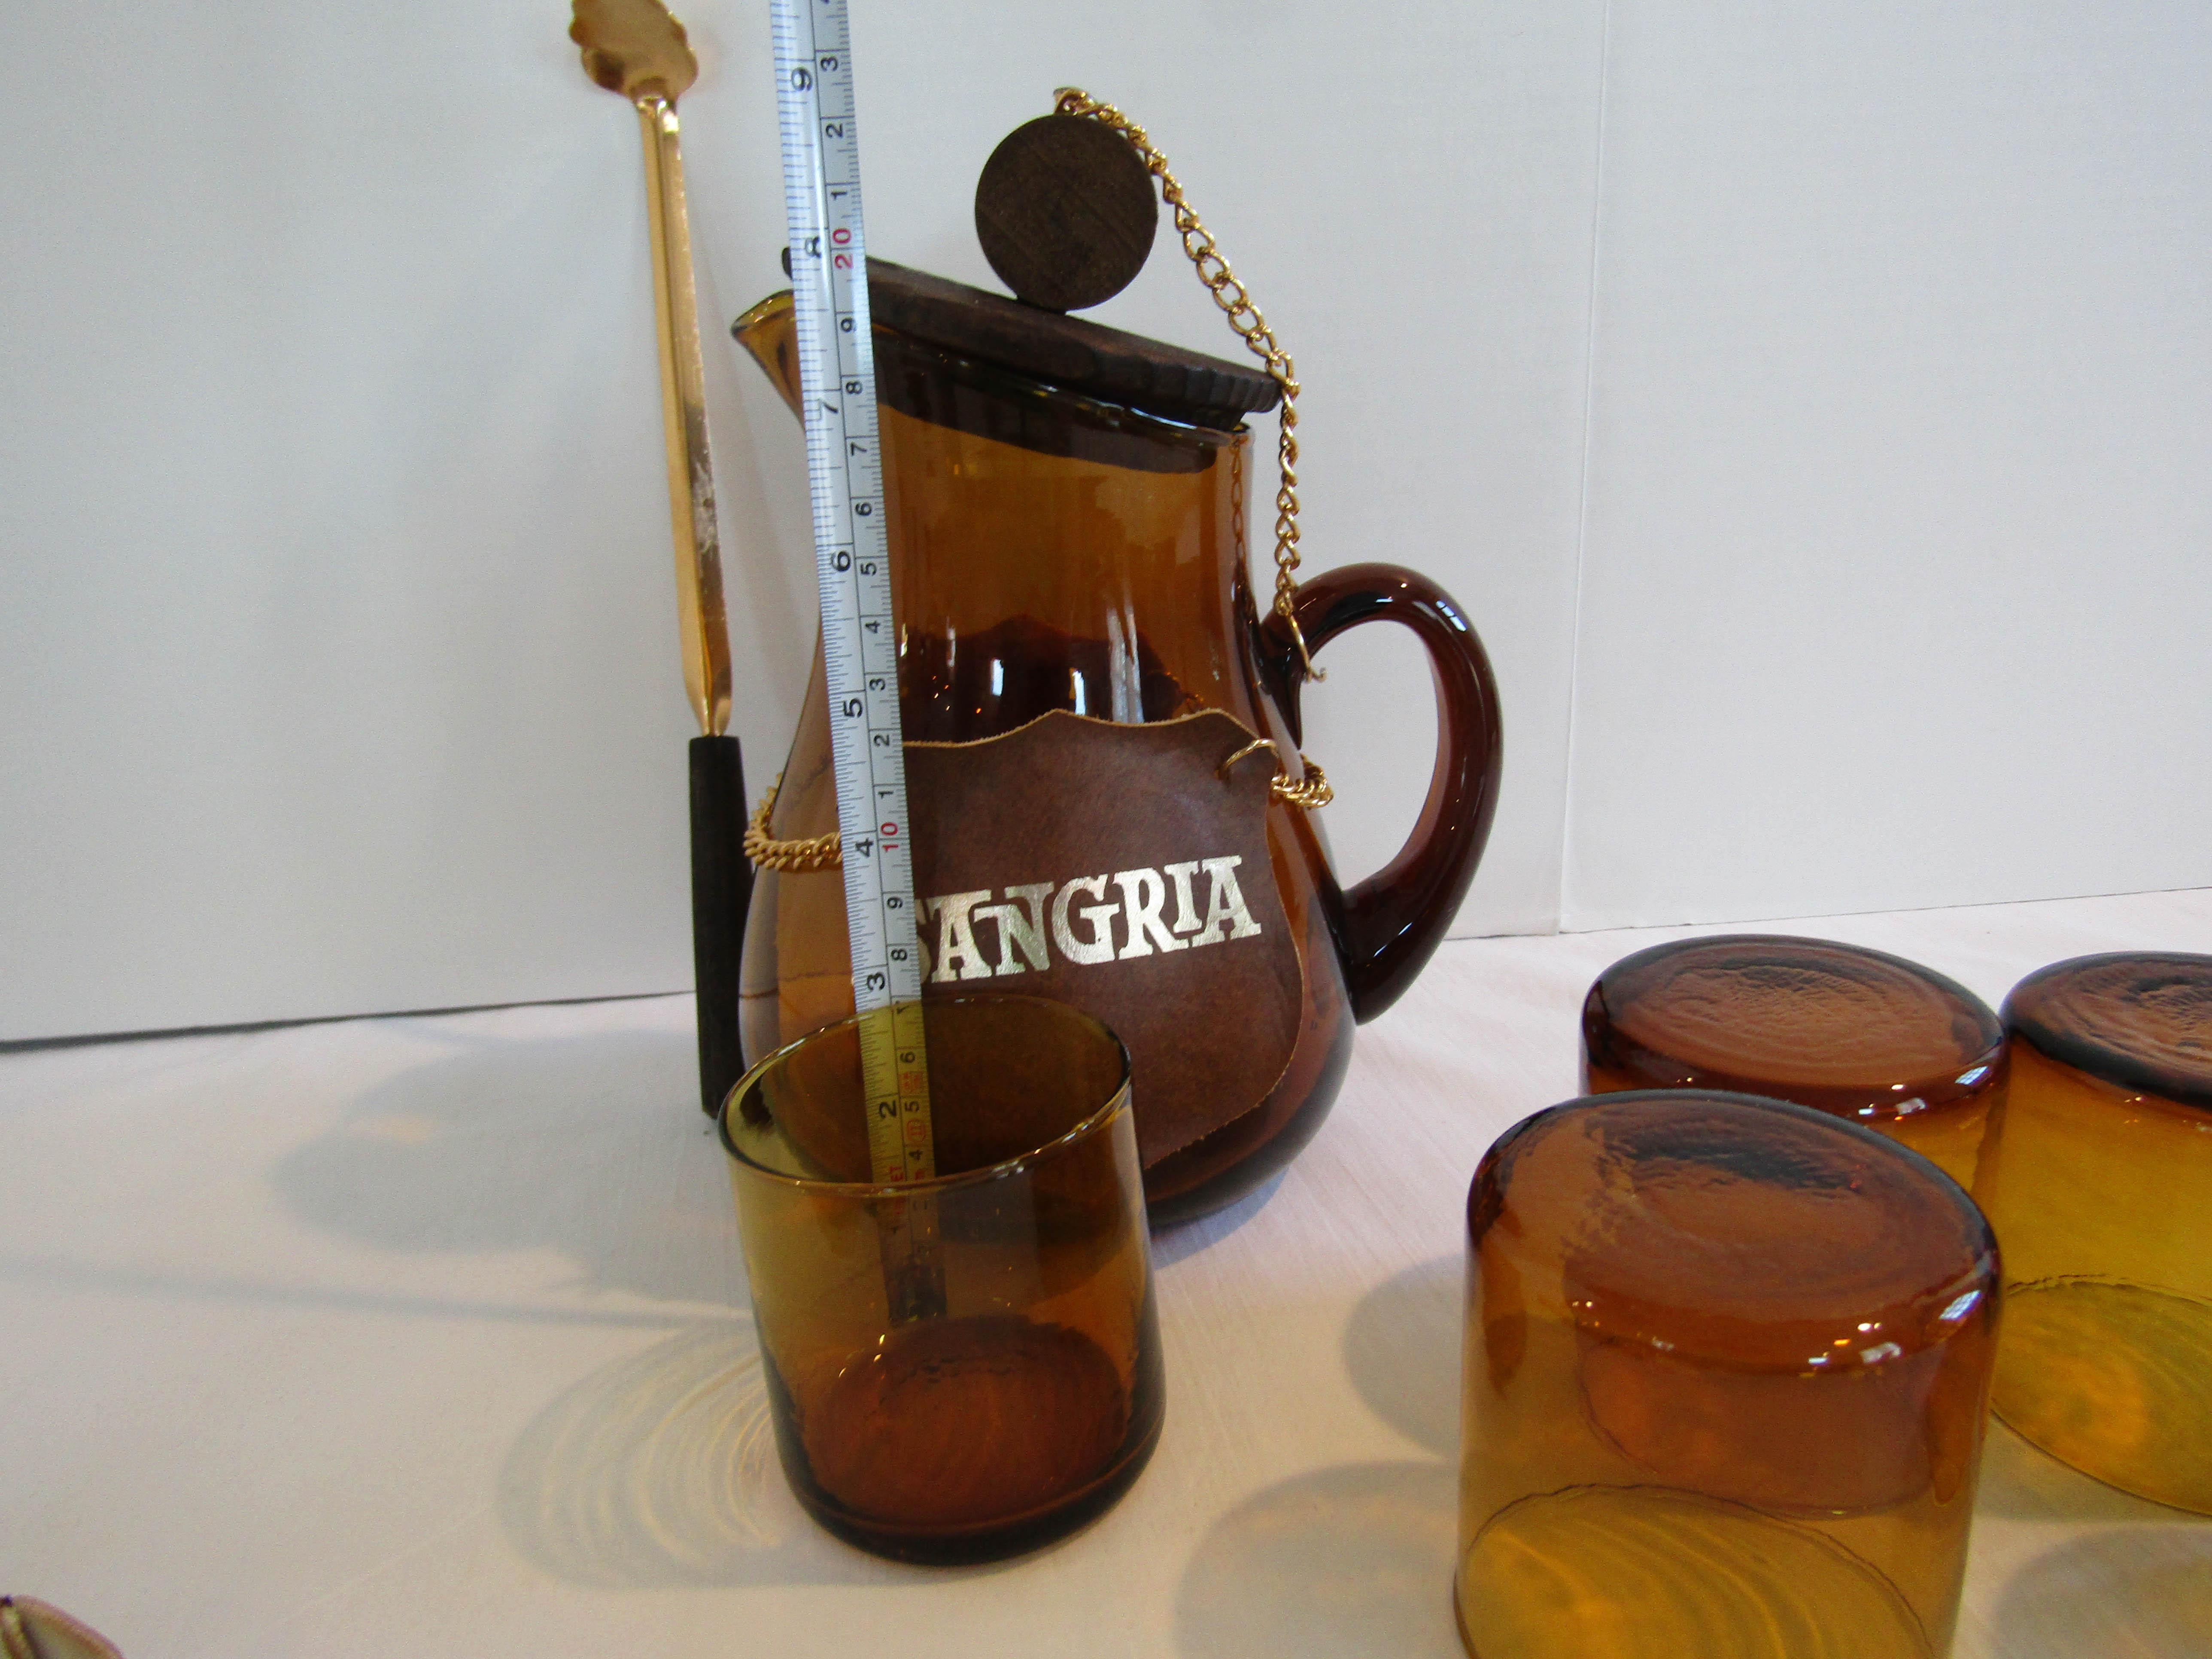 Sale Vintage 1970/'s Spanish Amber Glass /& Wood Sangria Pitcher and Glass Set Made in Spain Vintage Barware